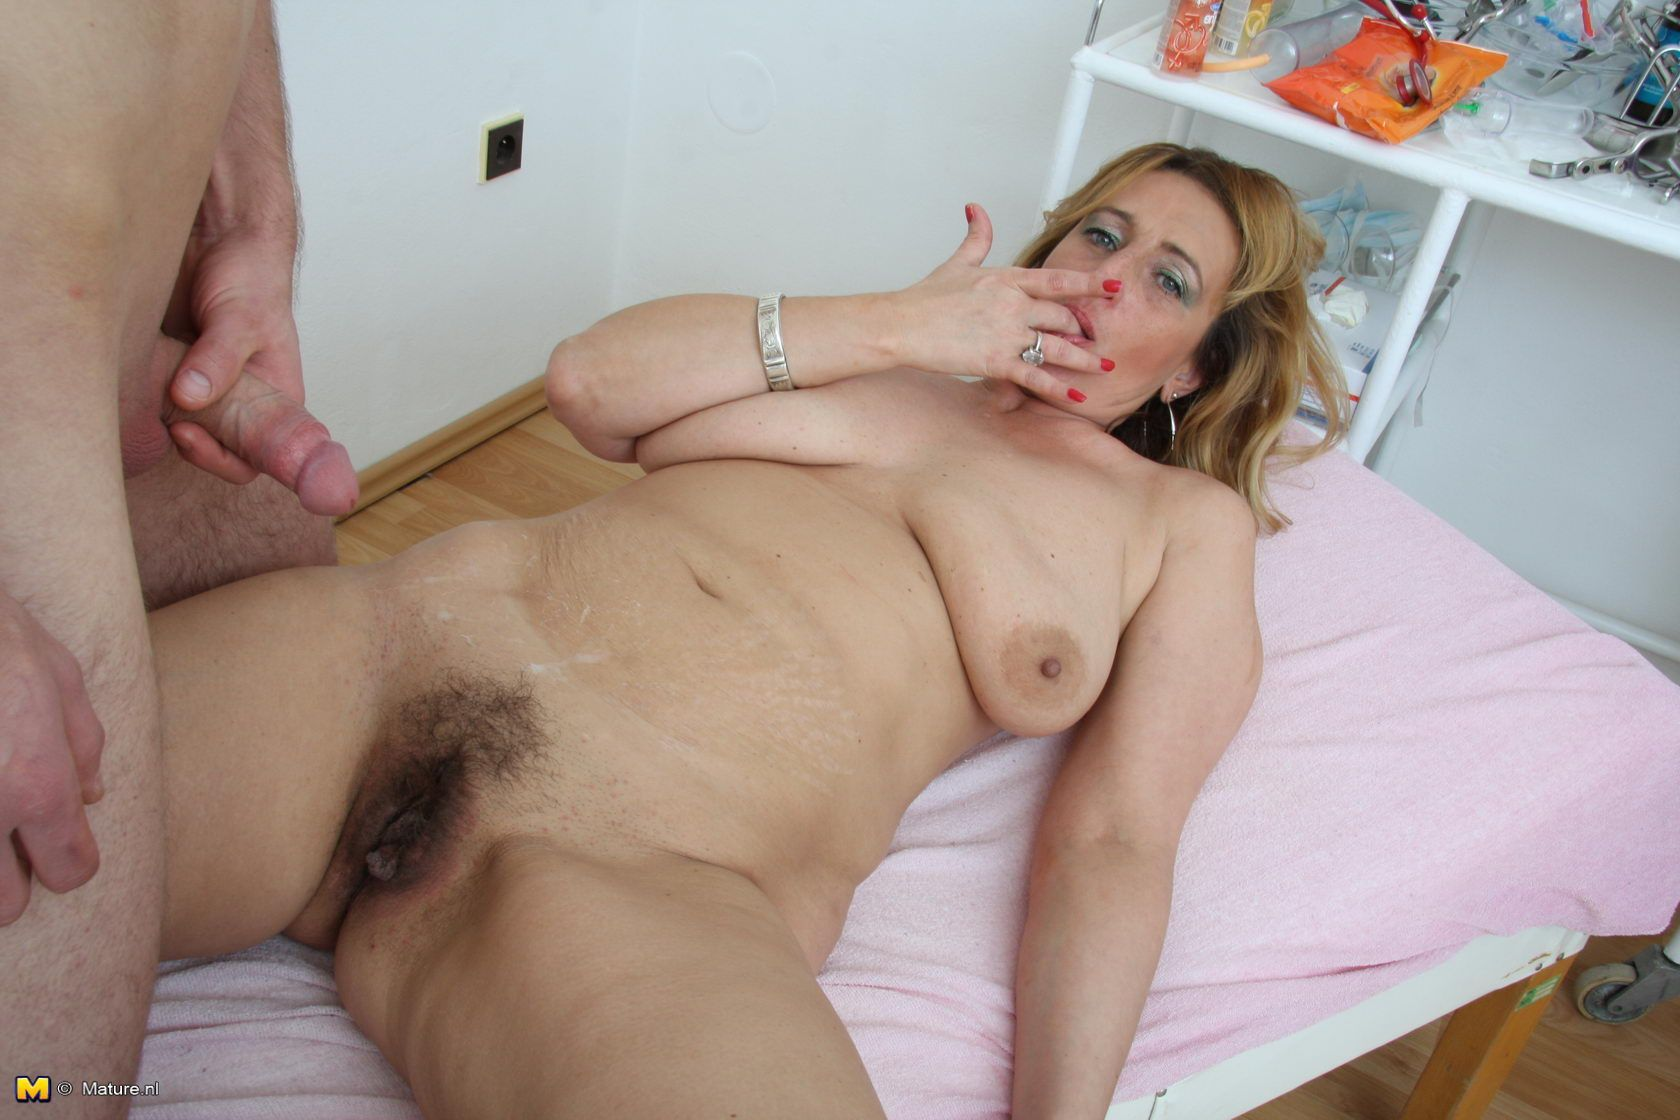 Best mature sex Quality Adult FREE pictures  Comments: 3